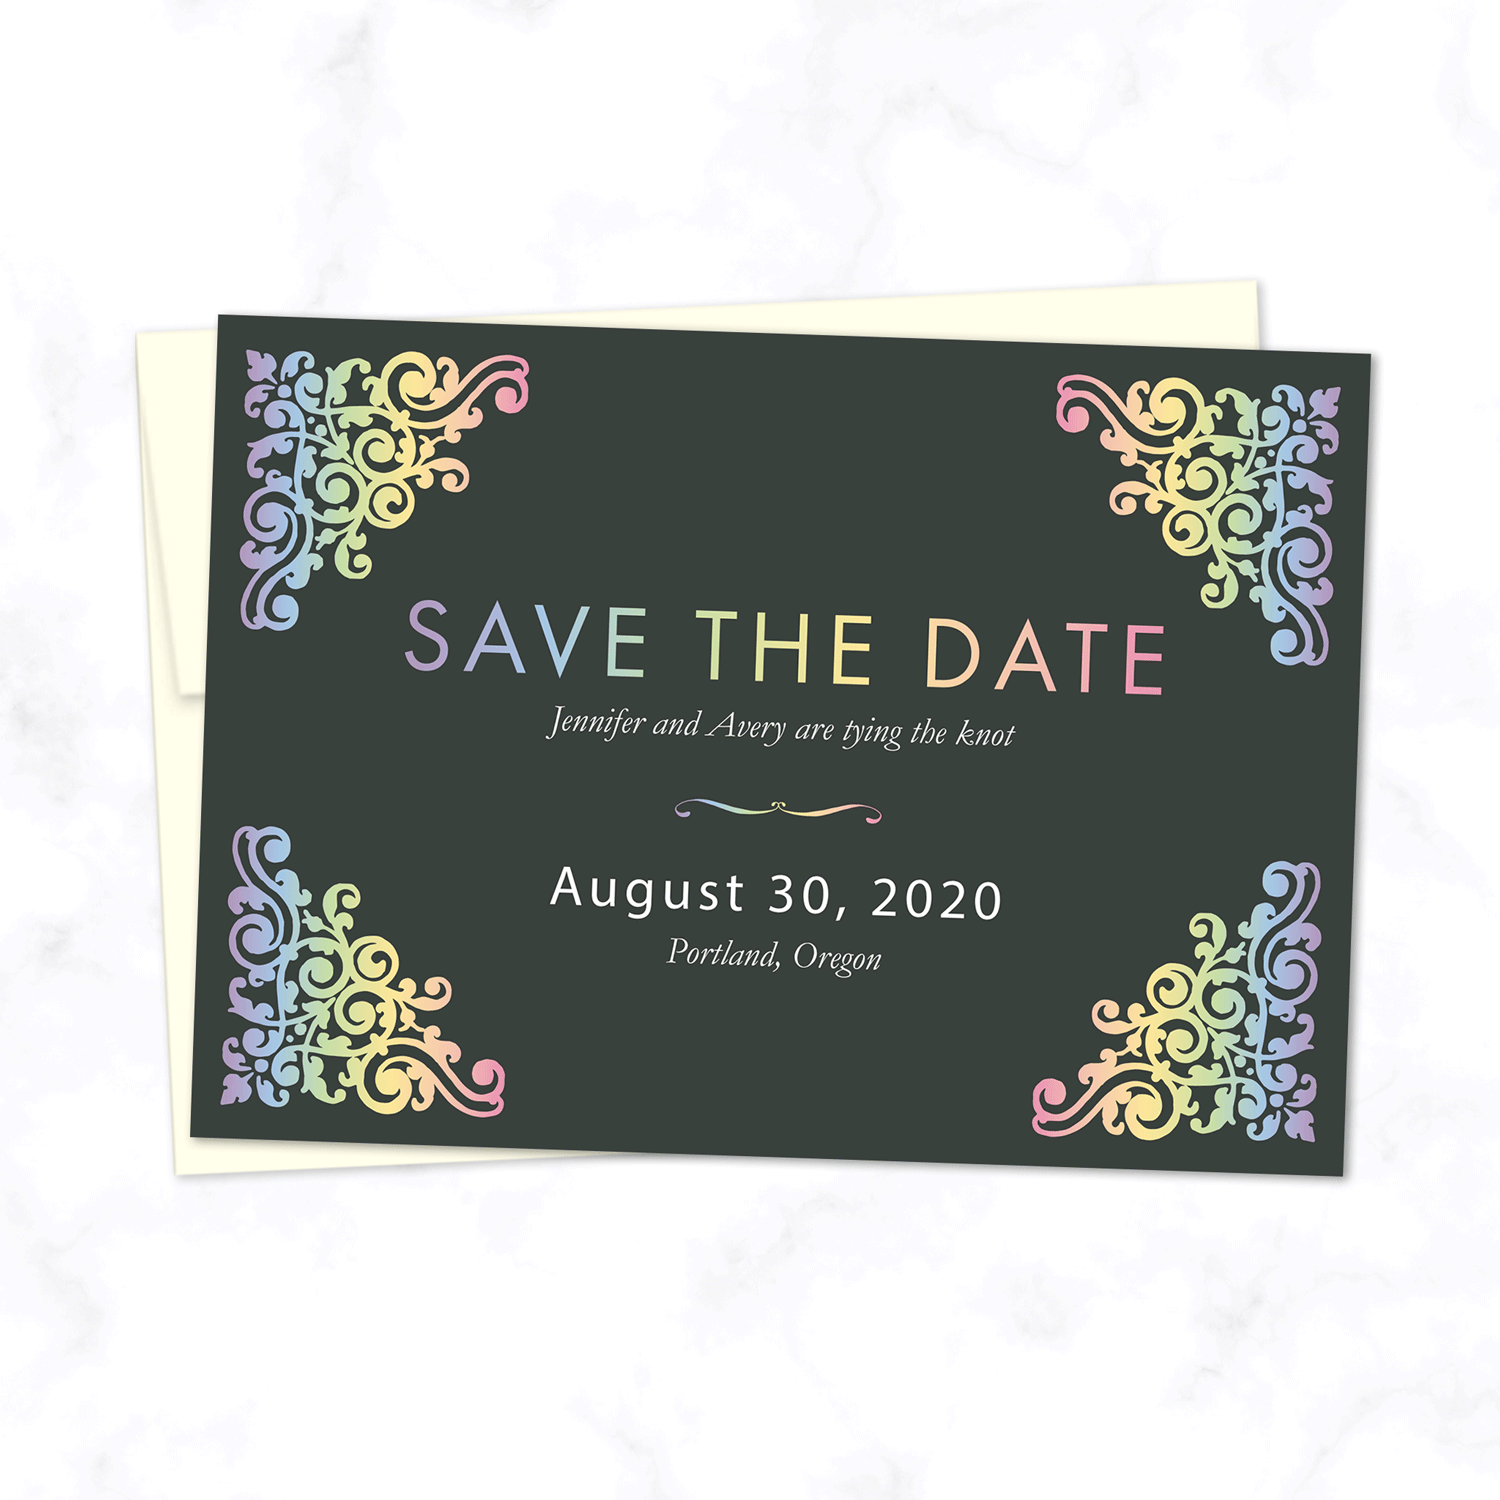 Pastel Rainbow Wedding Save the Date Card with Cream Envelope Included